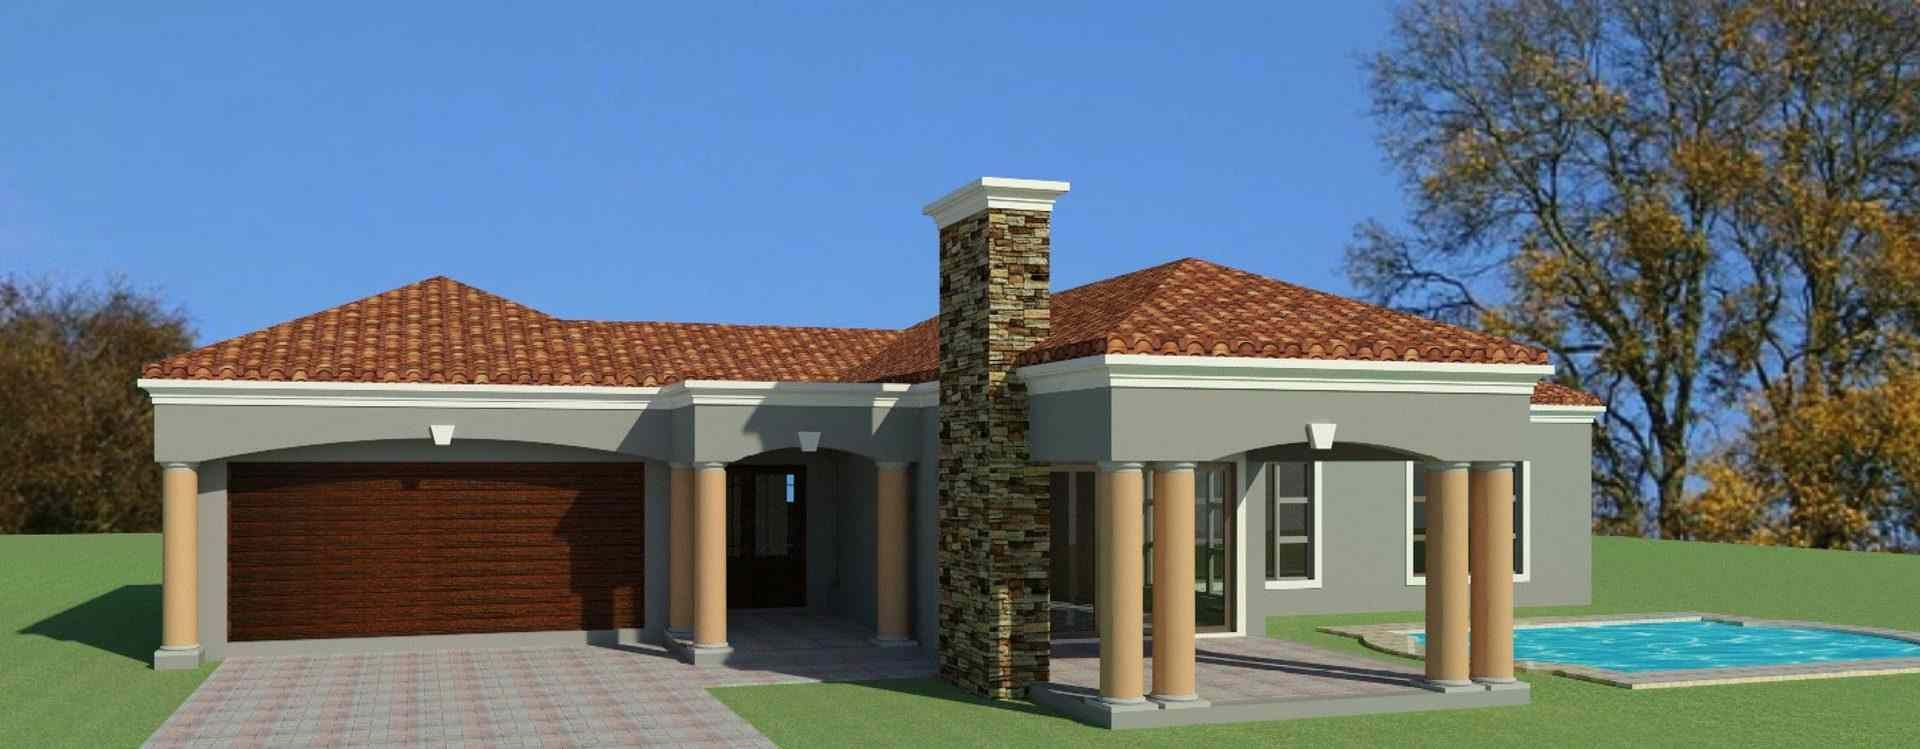 Single Floor Small Single Floor Simple Home Design House Plans South Africa Single Storey House Plans Tuscan House Plans